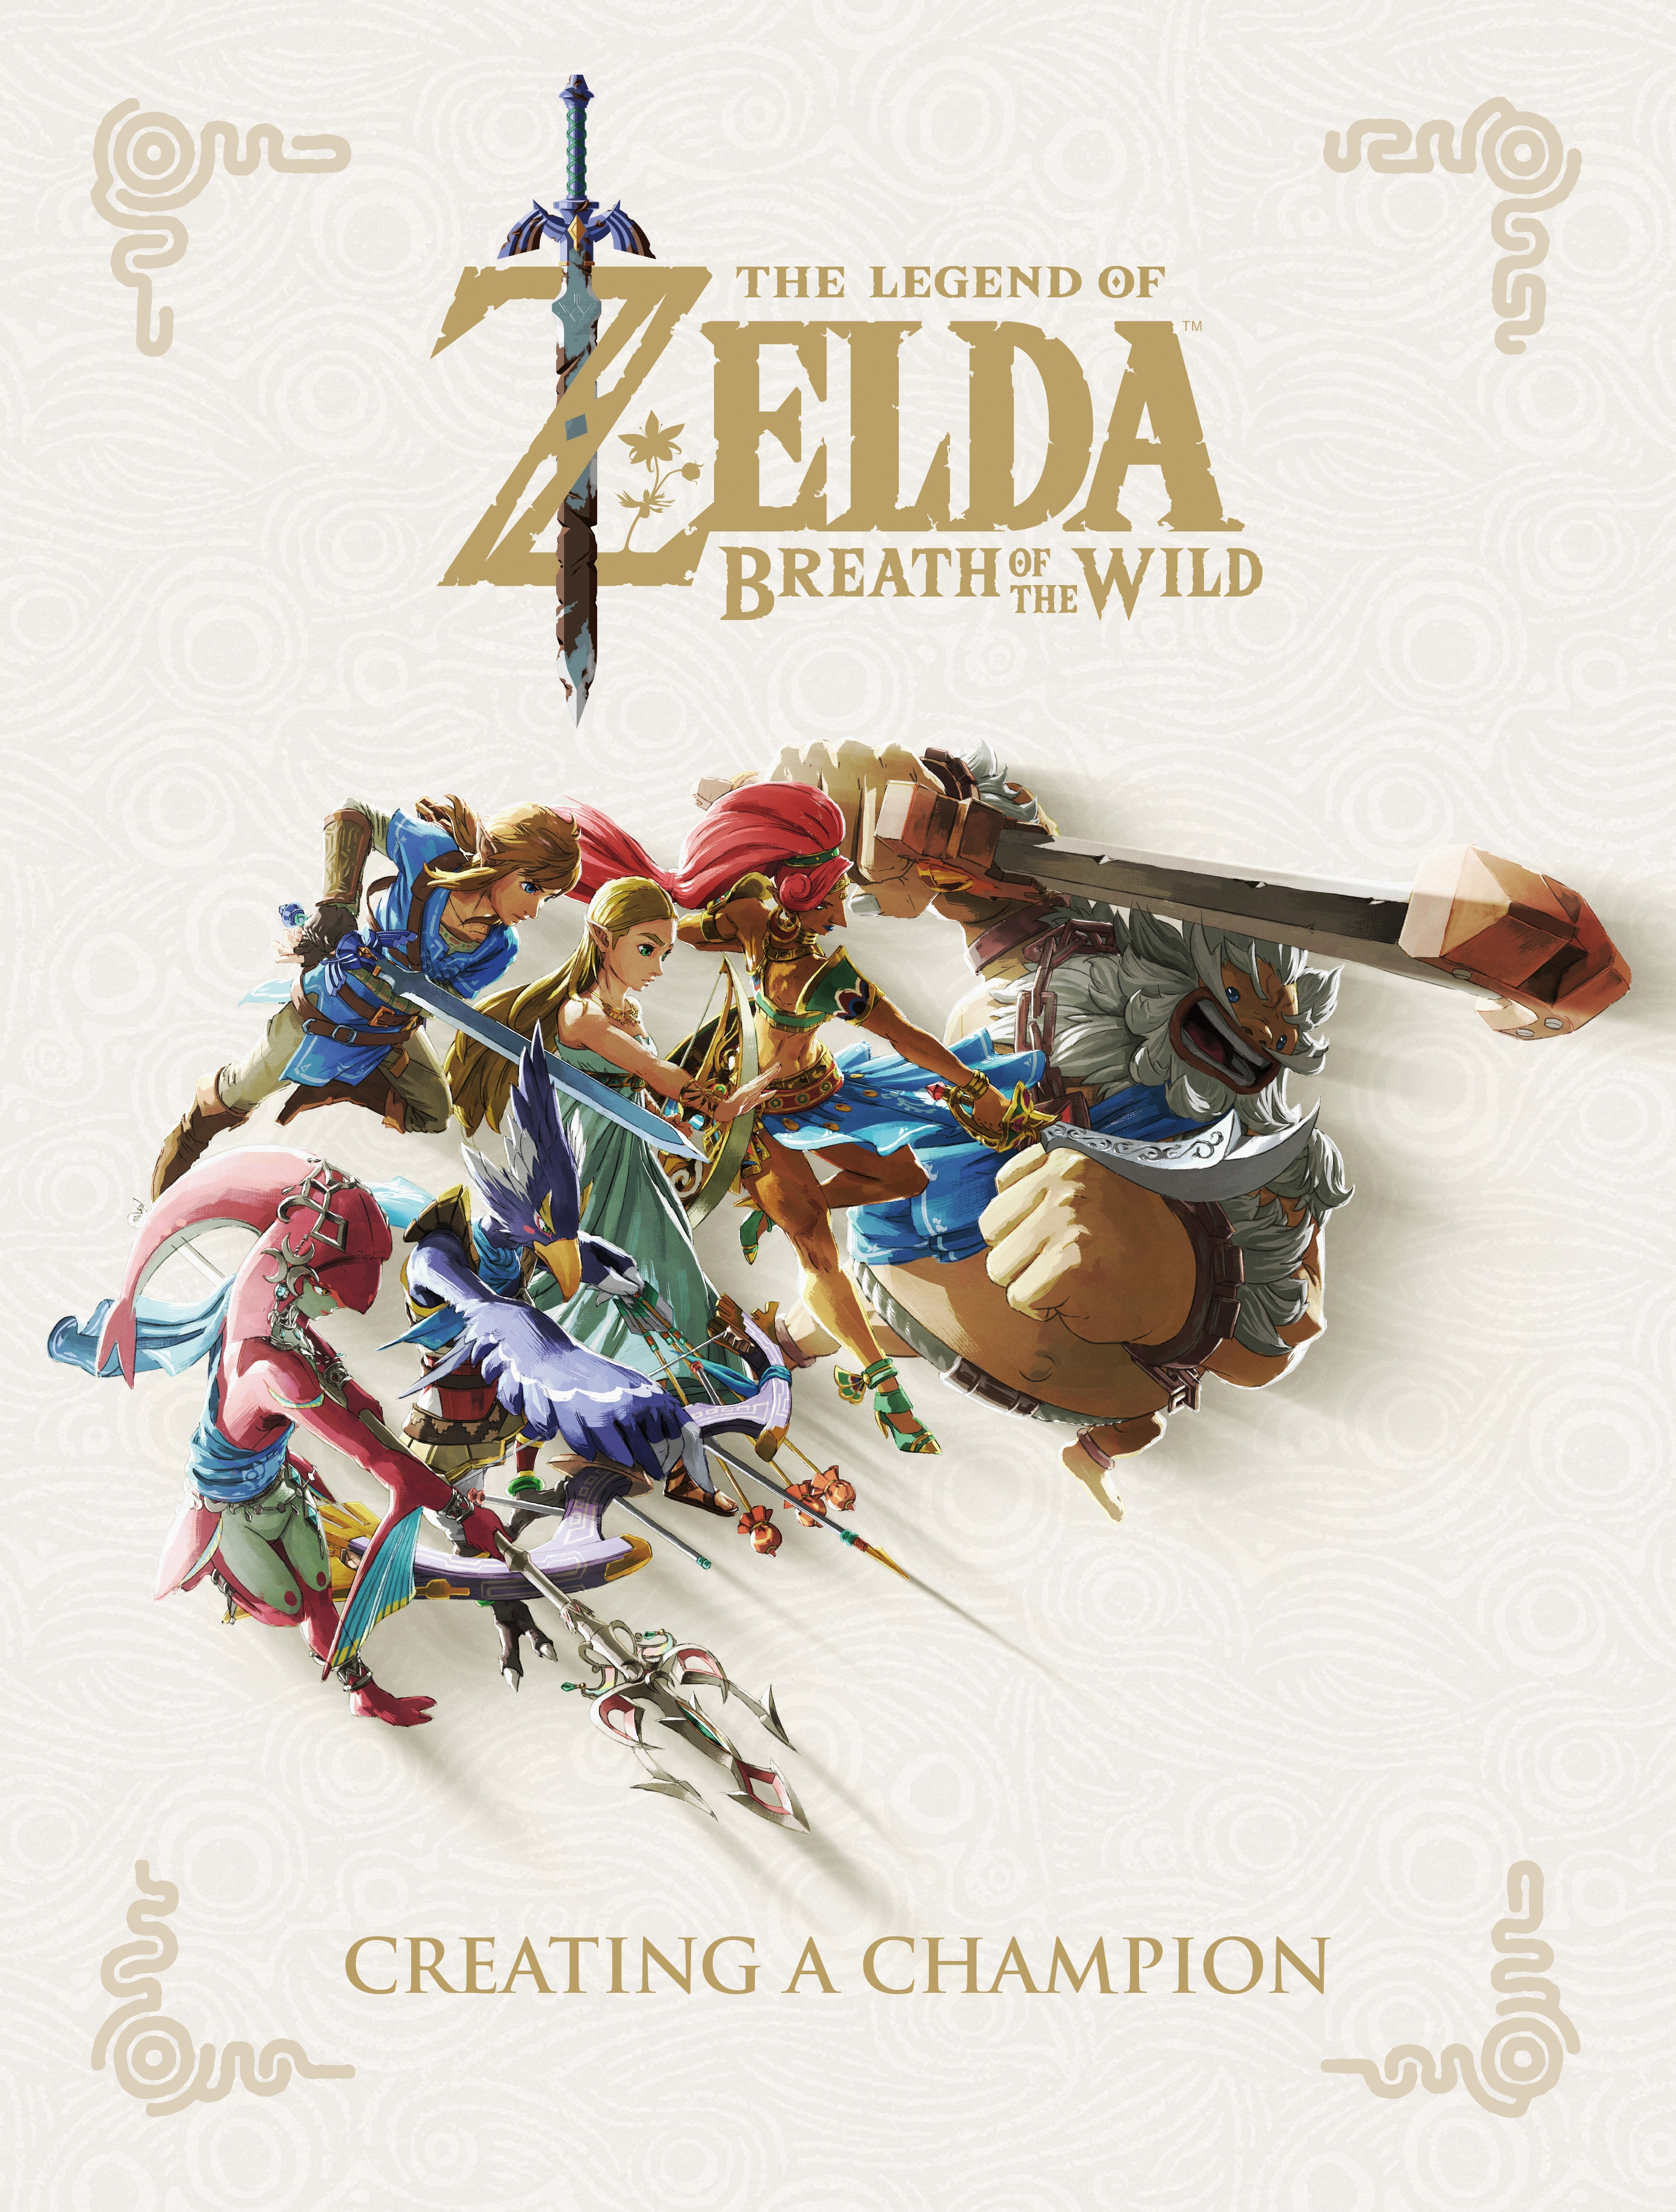 The Legend of Zelda: Breath of the Wild - Creating a Champion by Nintendo, ISBN: 9781506710105